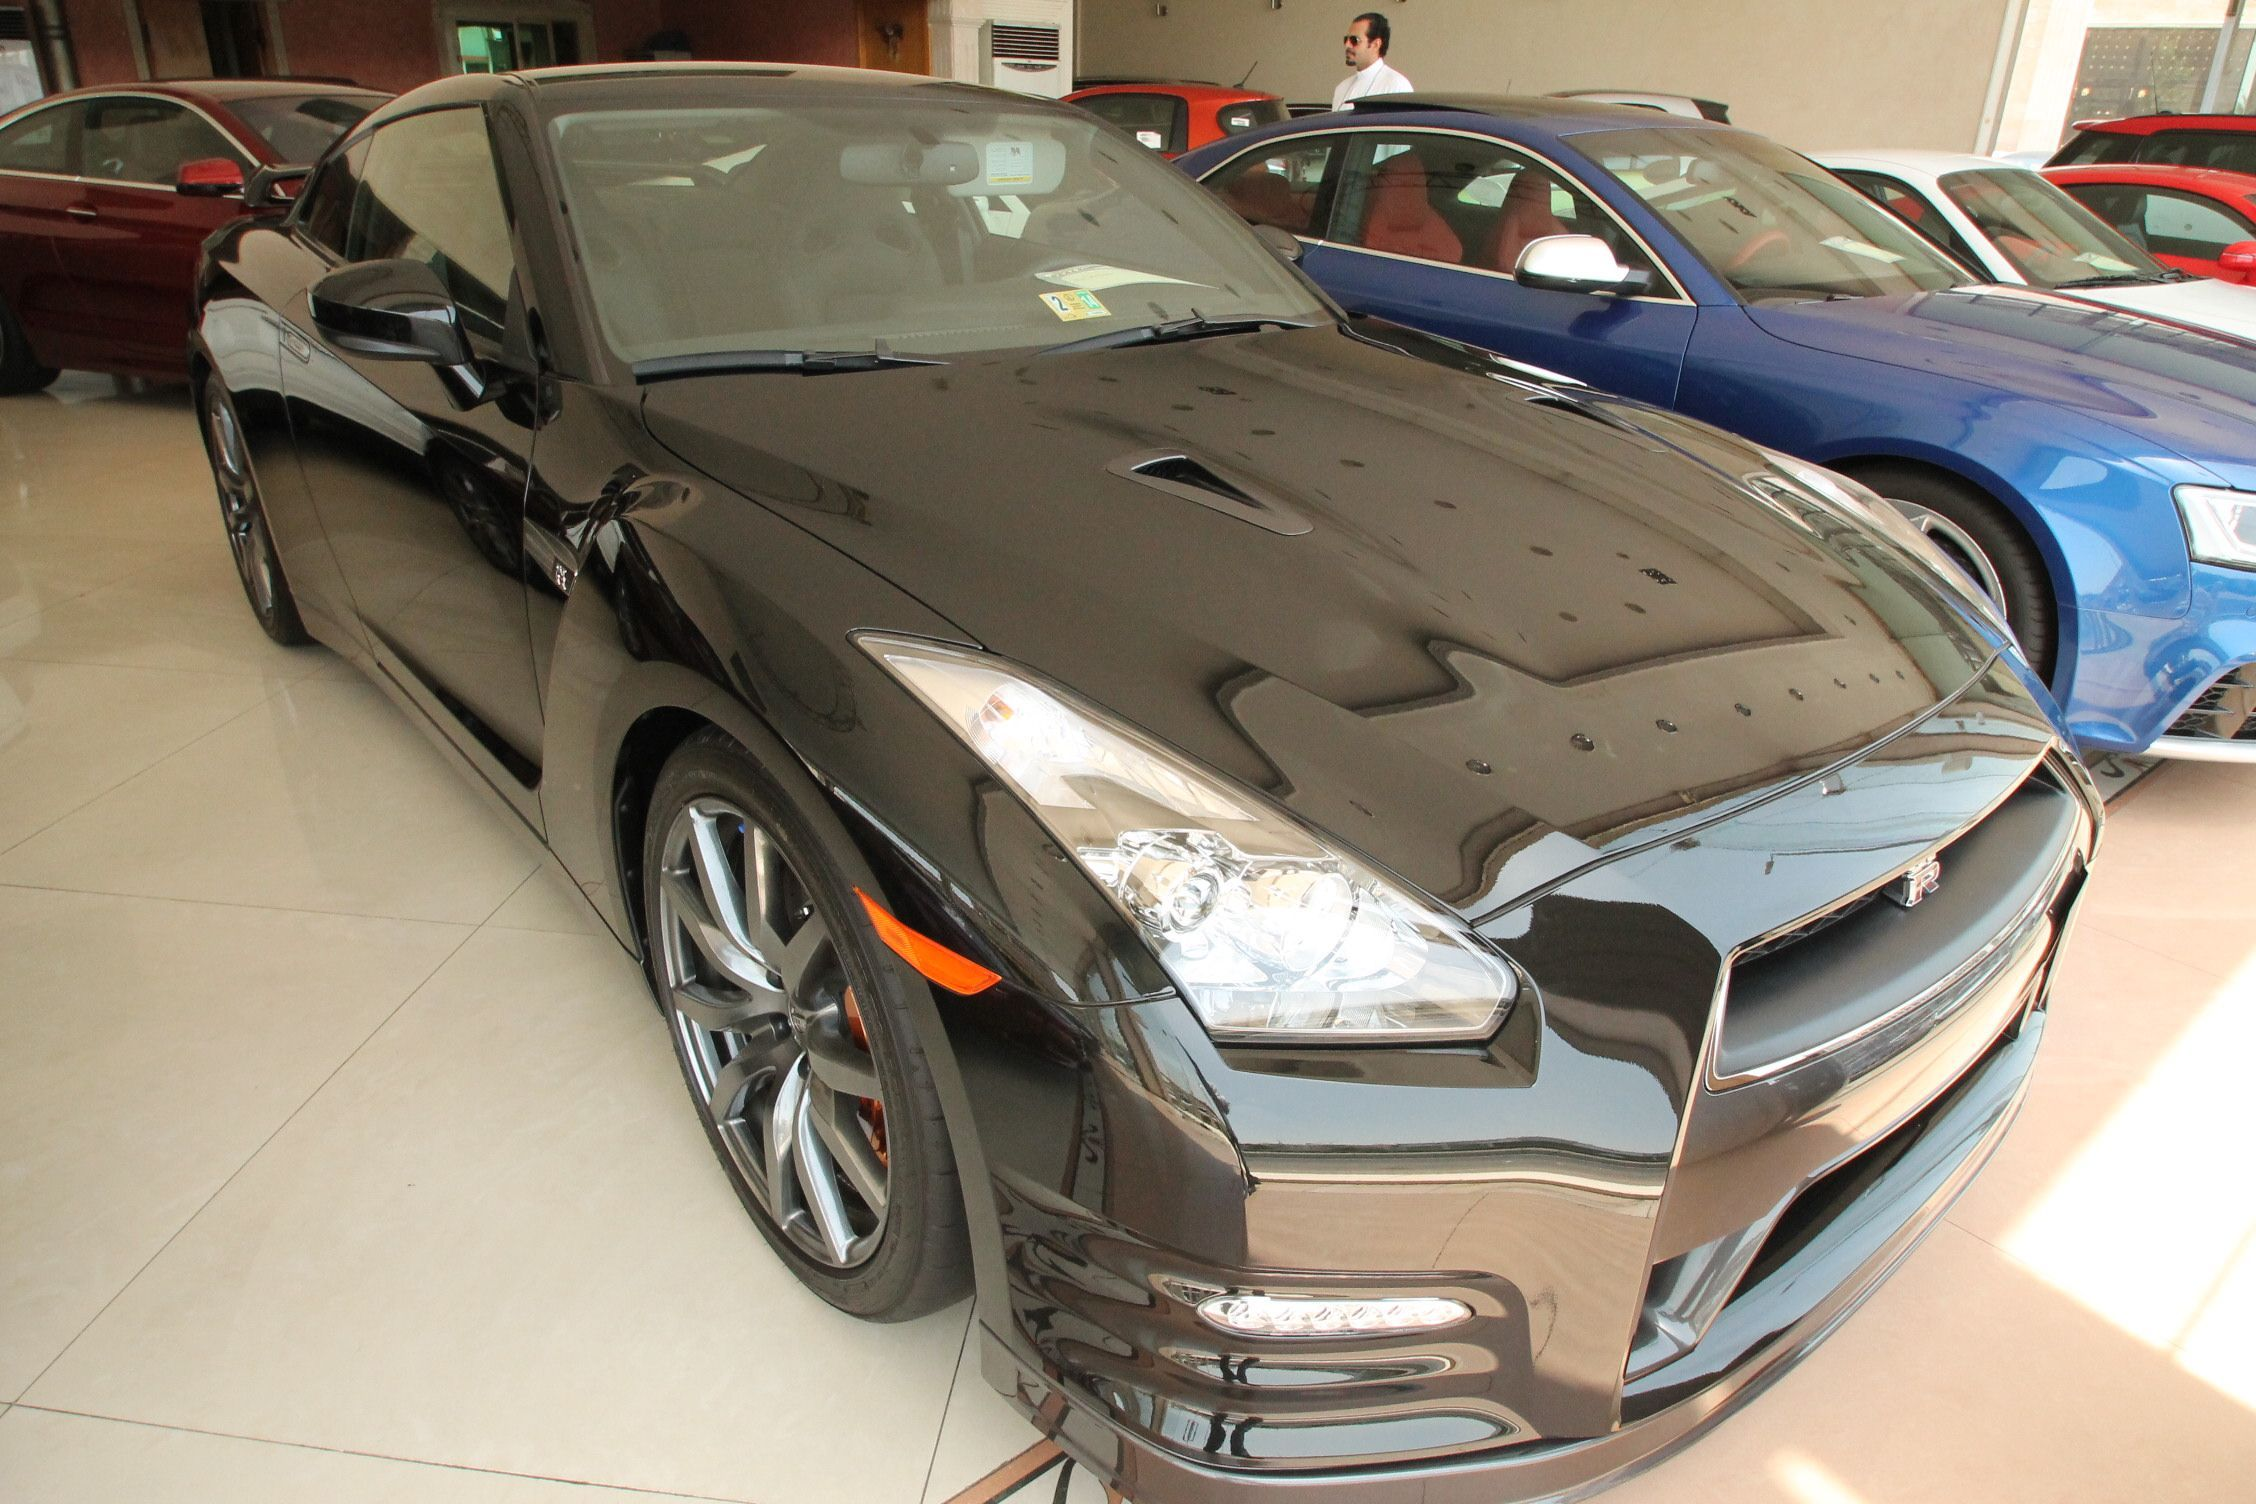 Nissan GTR For Sale in Jeddah Nissan gt, Nissan gtr